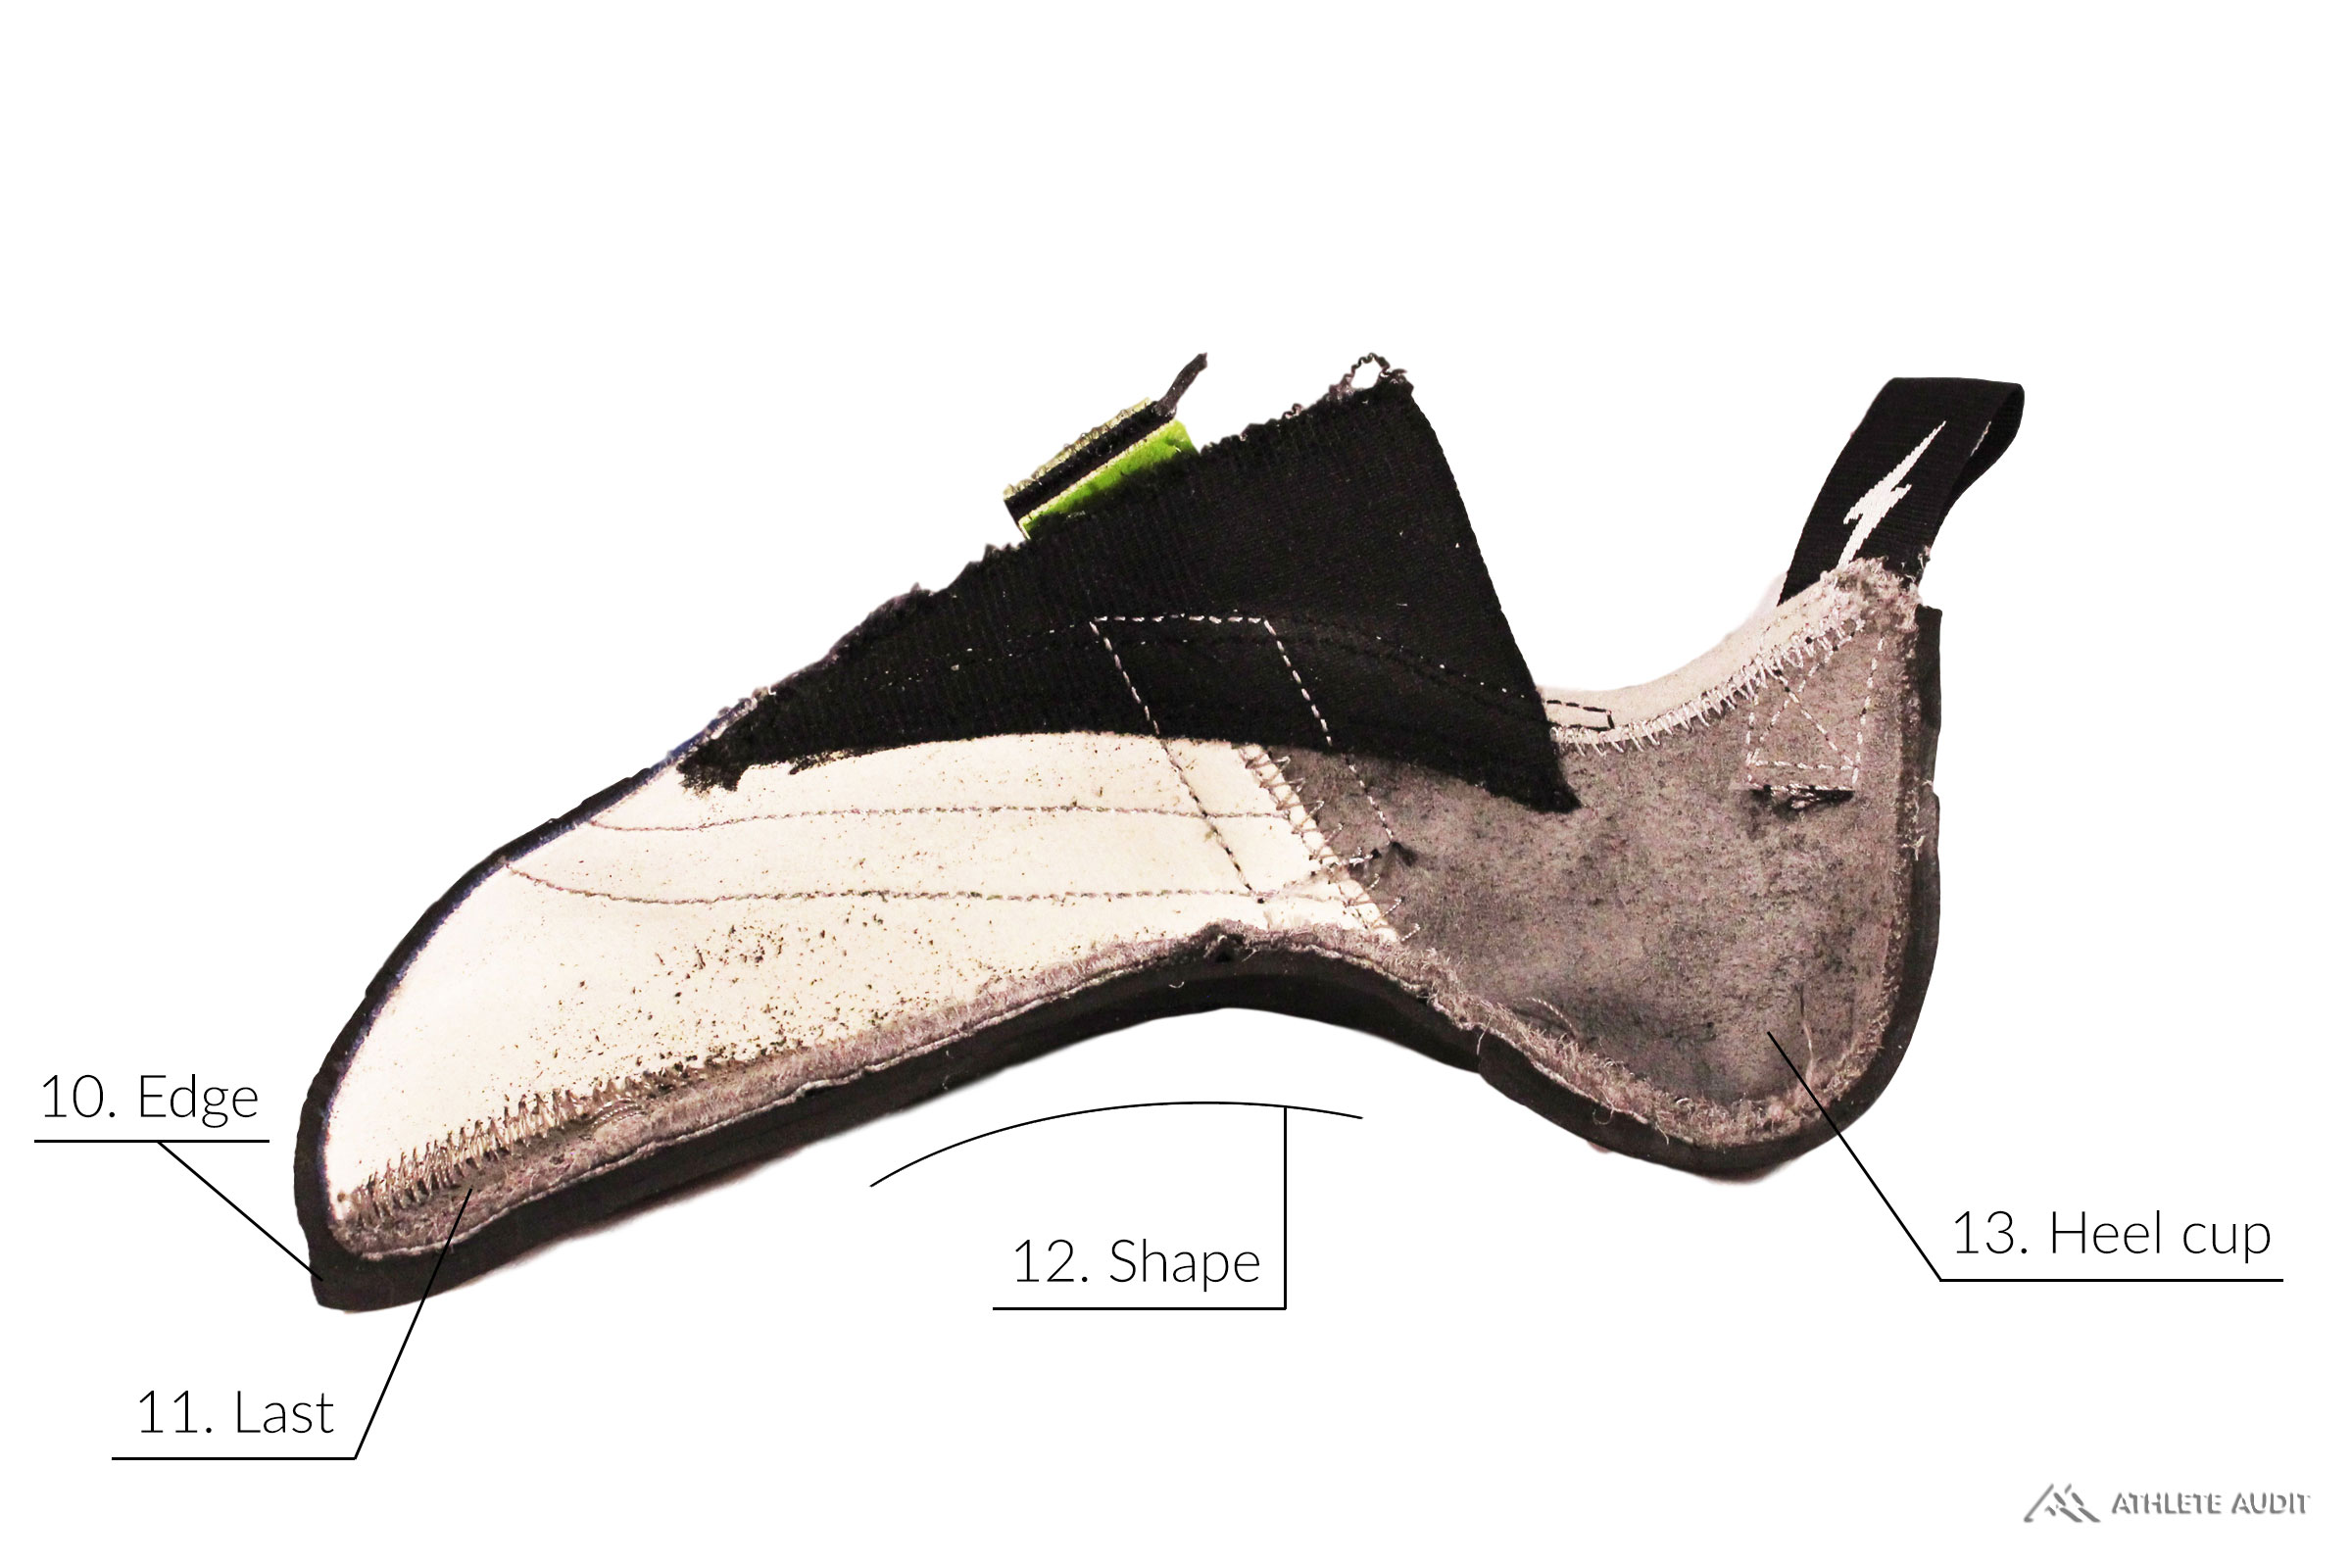 Parts of a Climbing Shoe - Inside - Anatomy of an Athletic Shoe - Athlete Audit